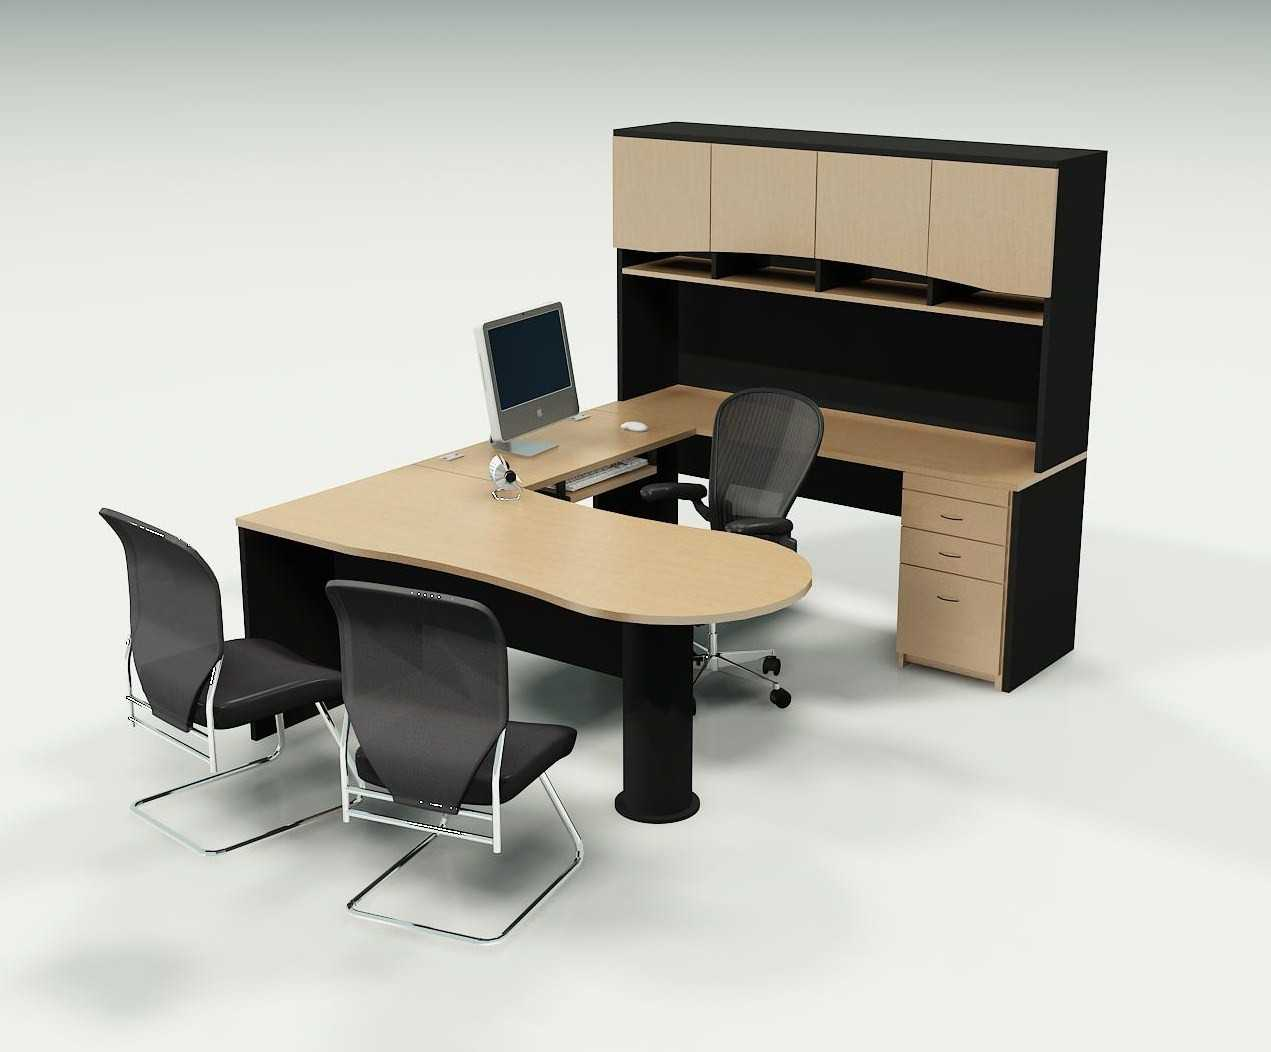 office furniture ideas in creative style